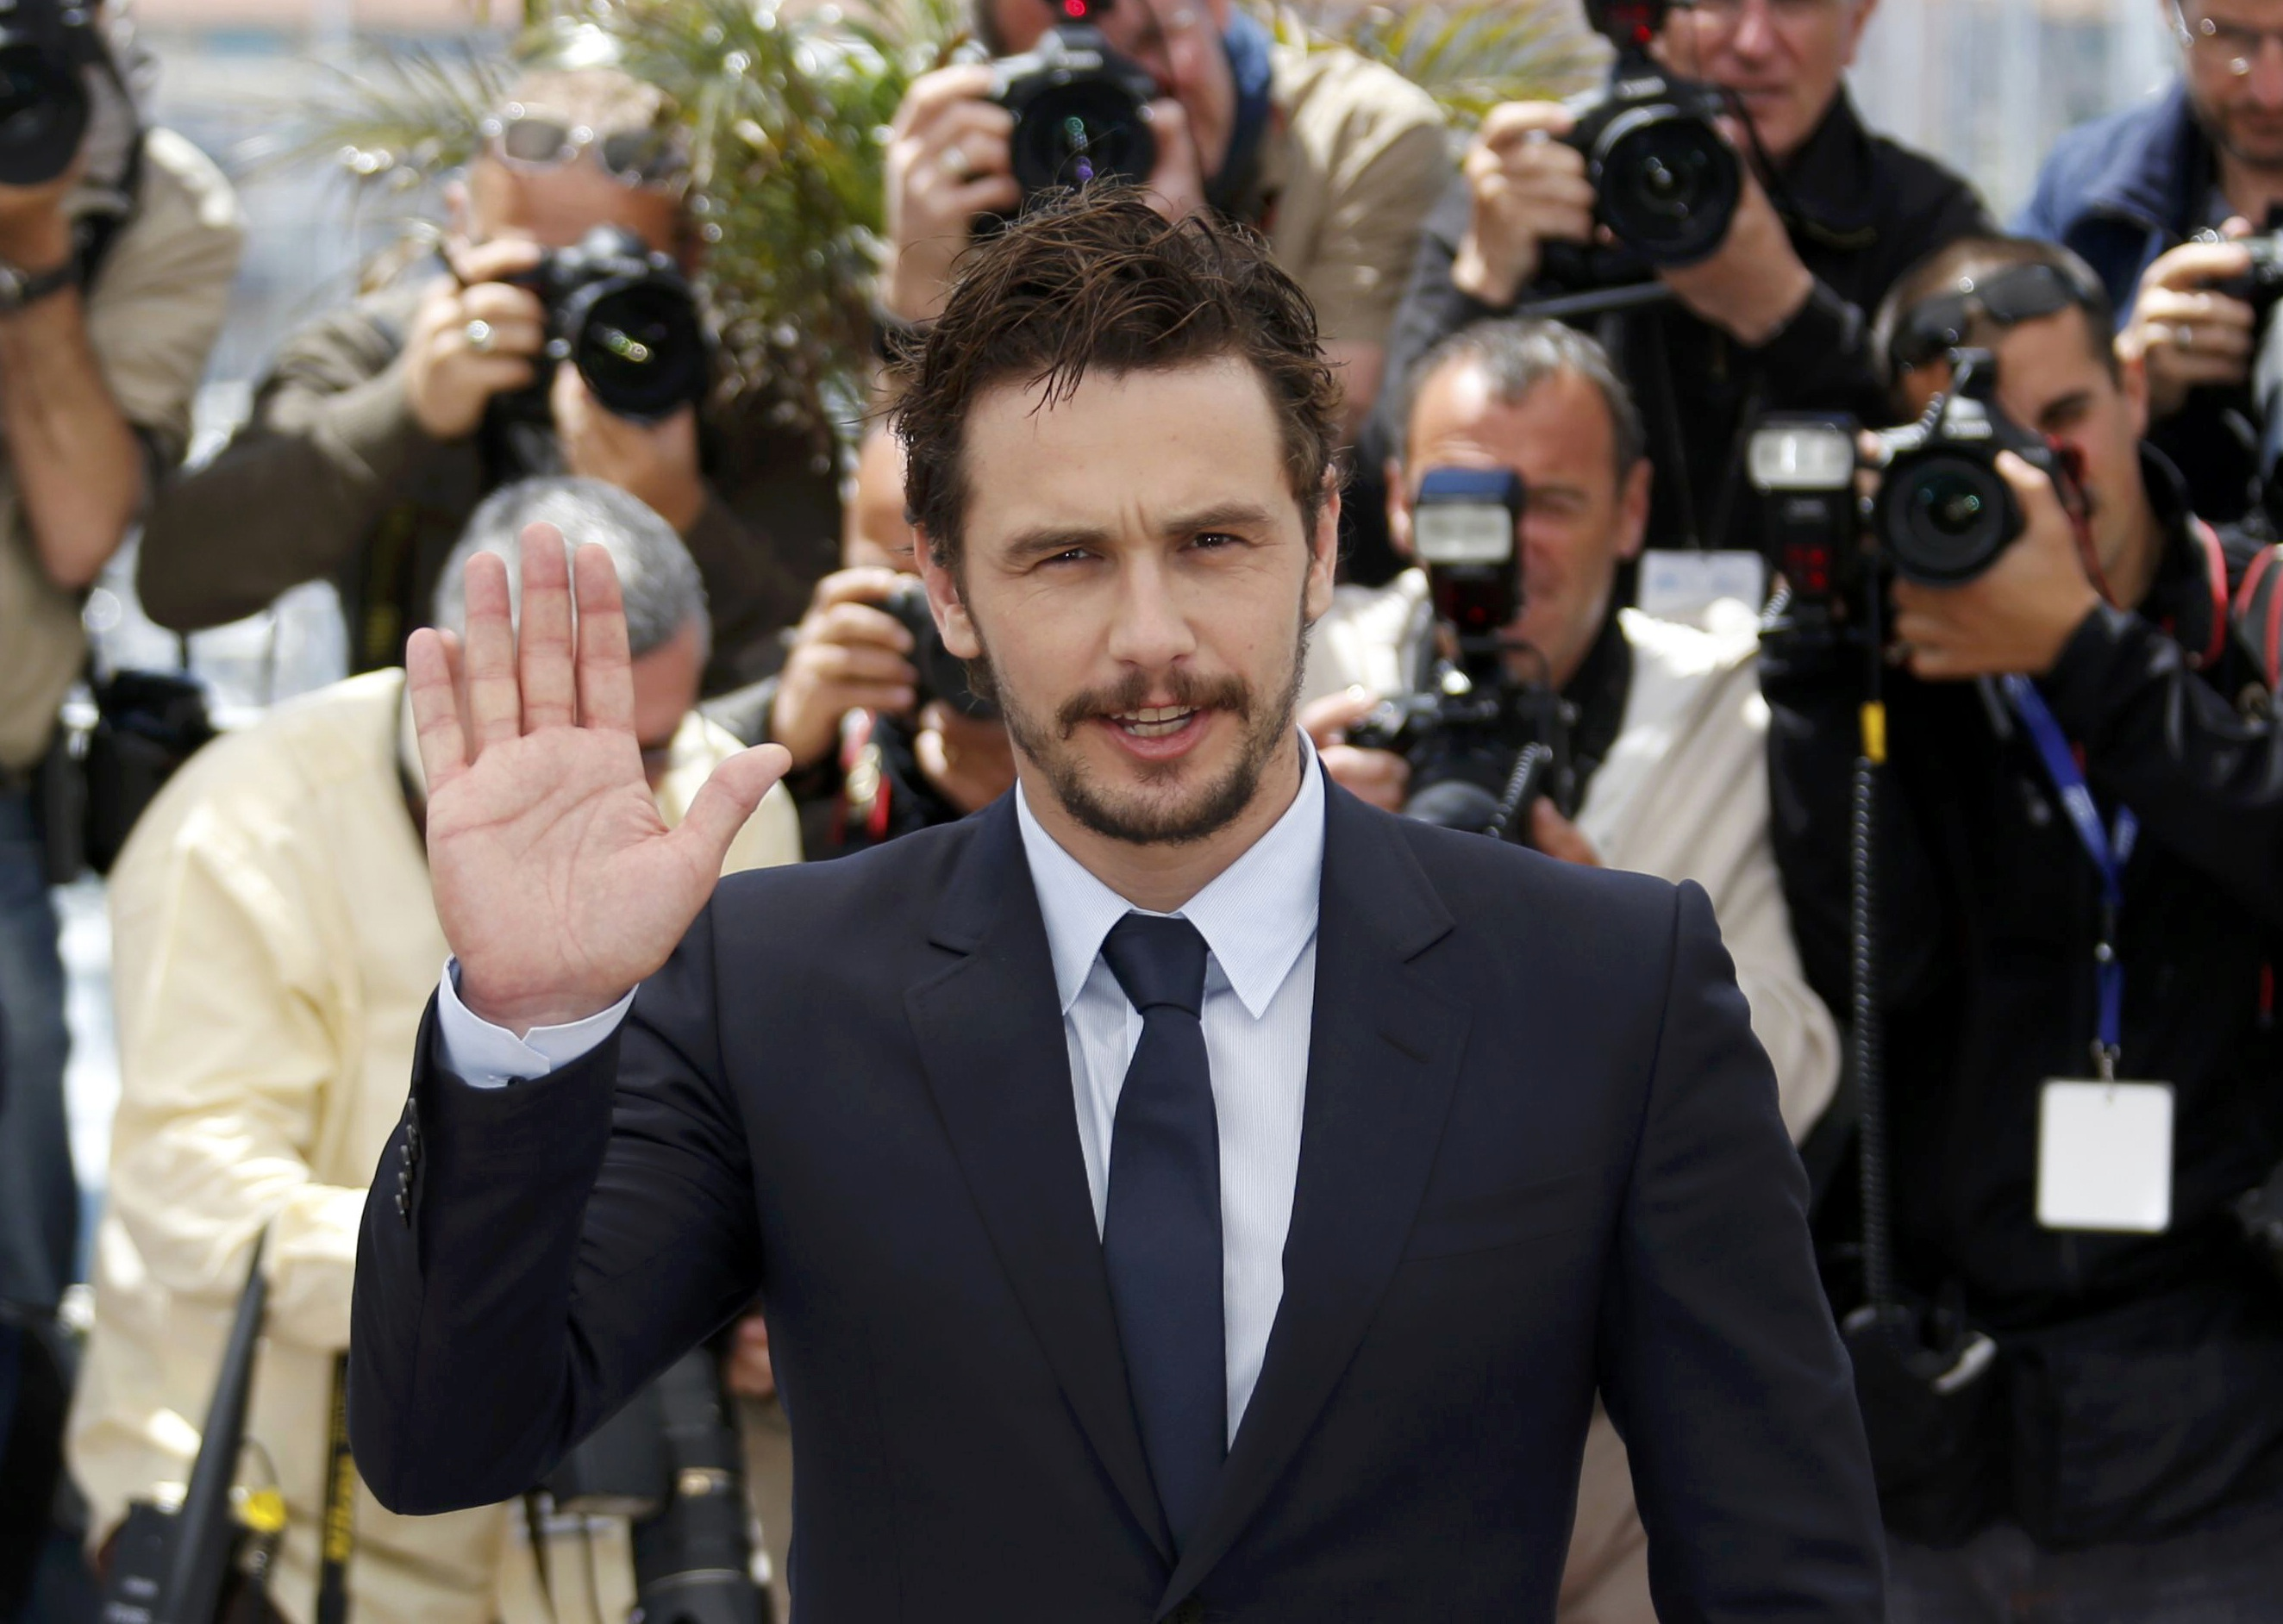 James Franco explains himself over chatting up teenage girl on Instagram: 'I used bad judgment'